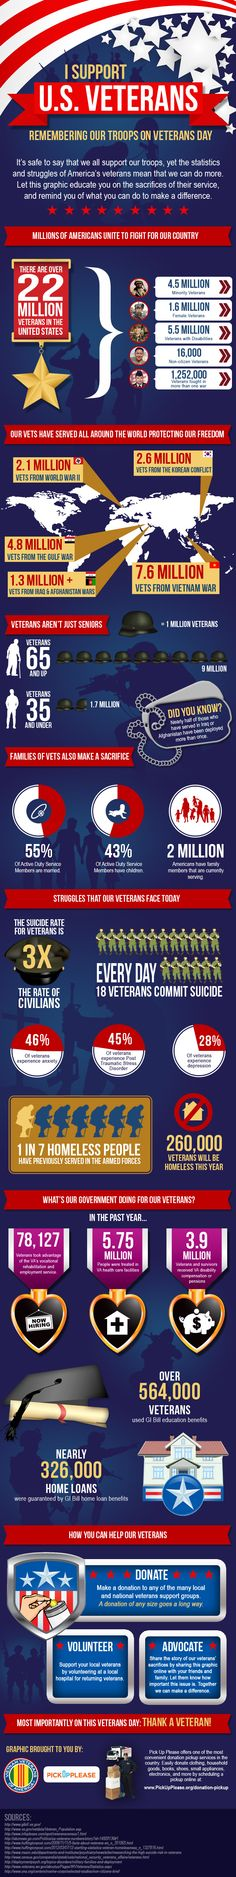 Great infographic reminding us why we support our veterans on veterans day.